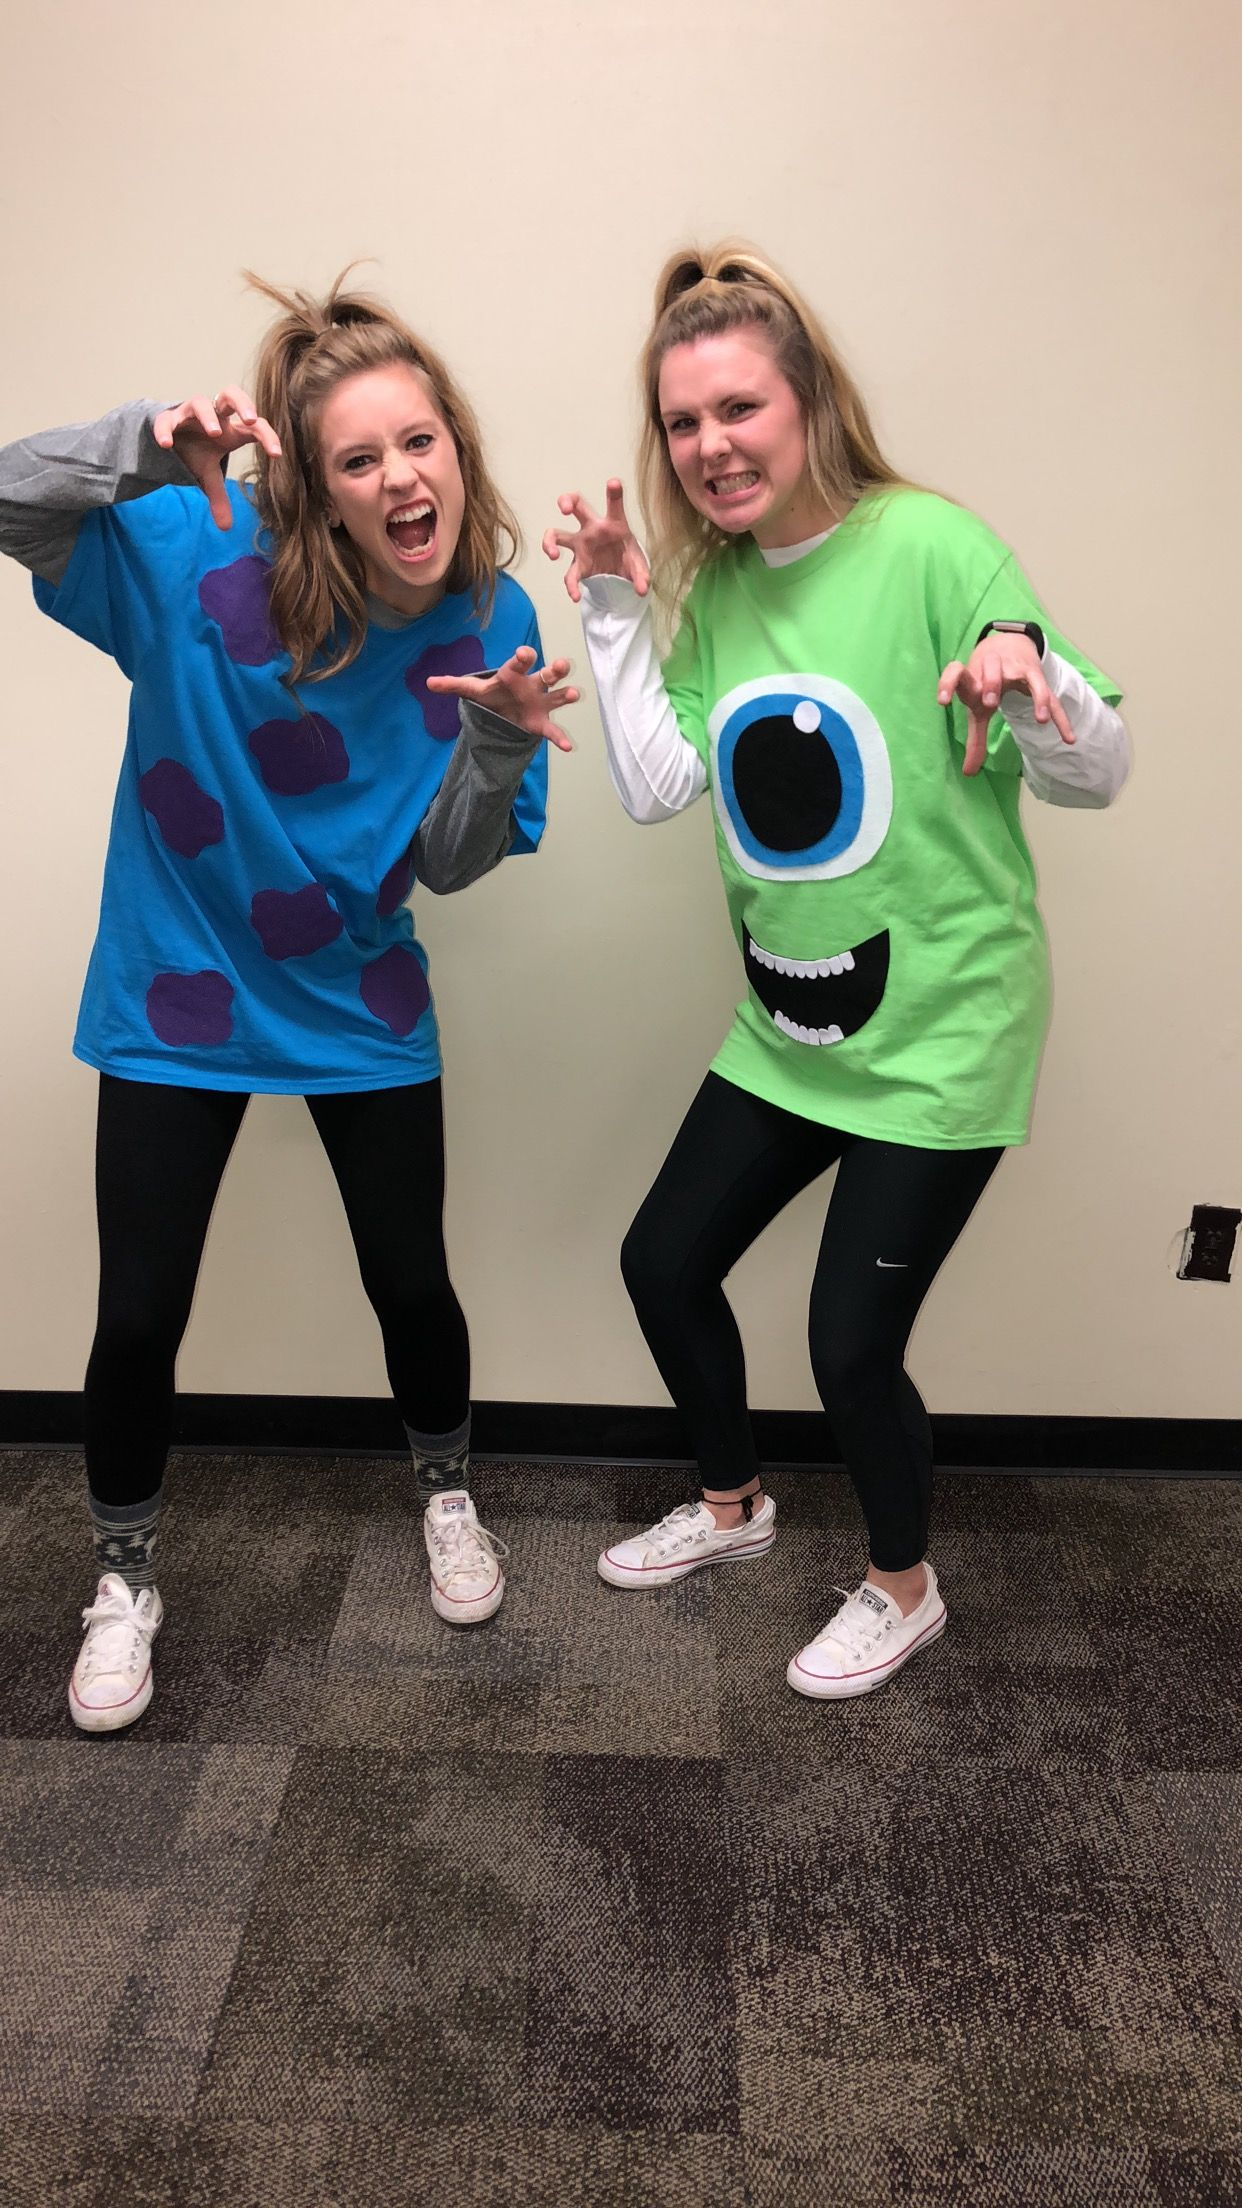 Diy Monsters Inc Mike Sully Halloween Costumes In 2019